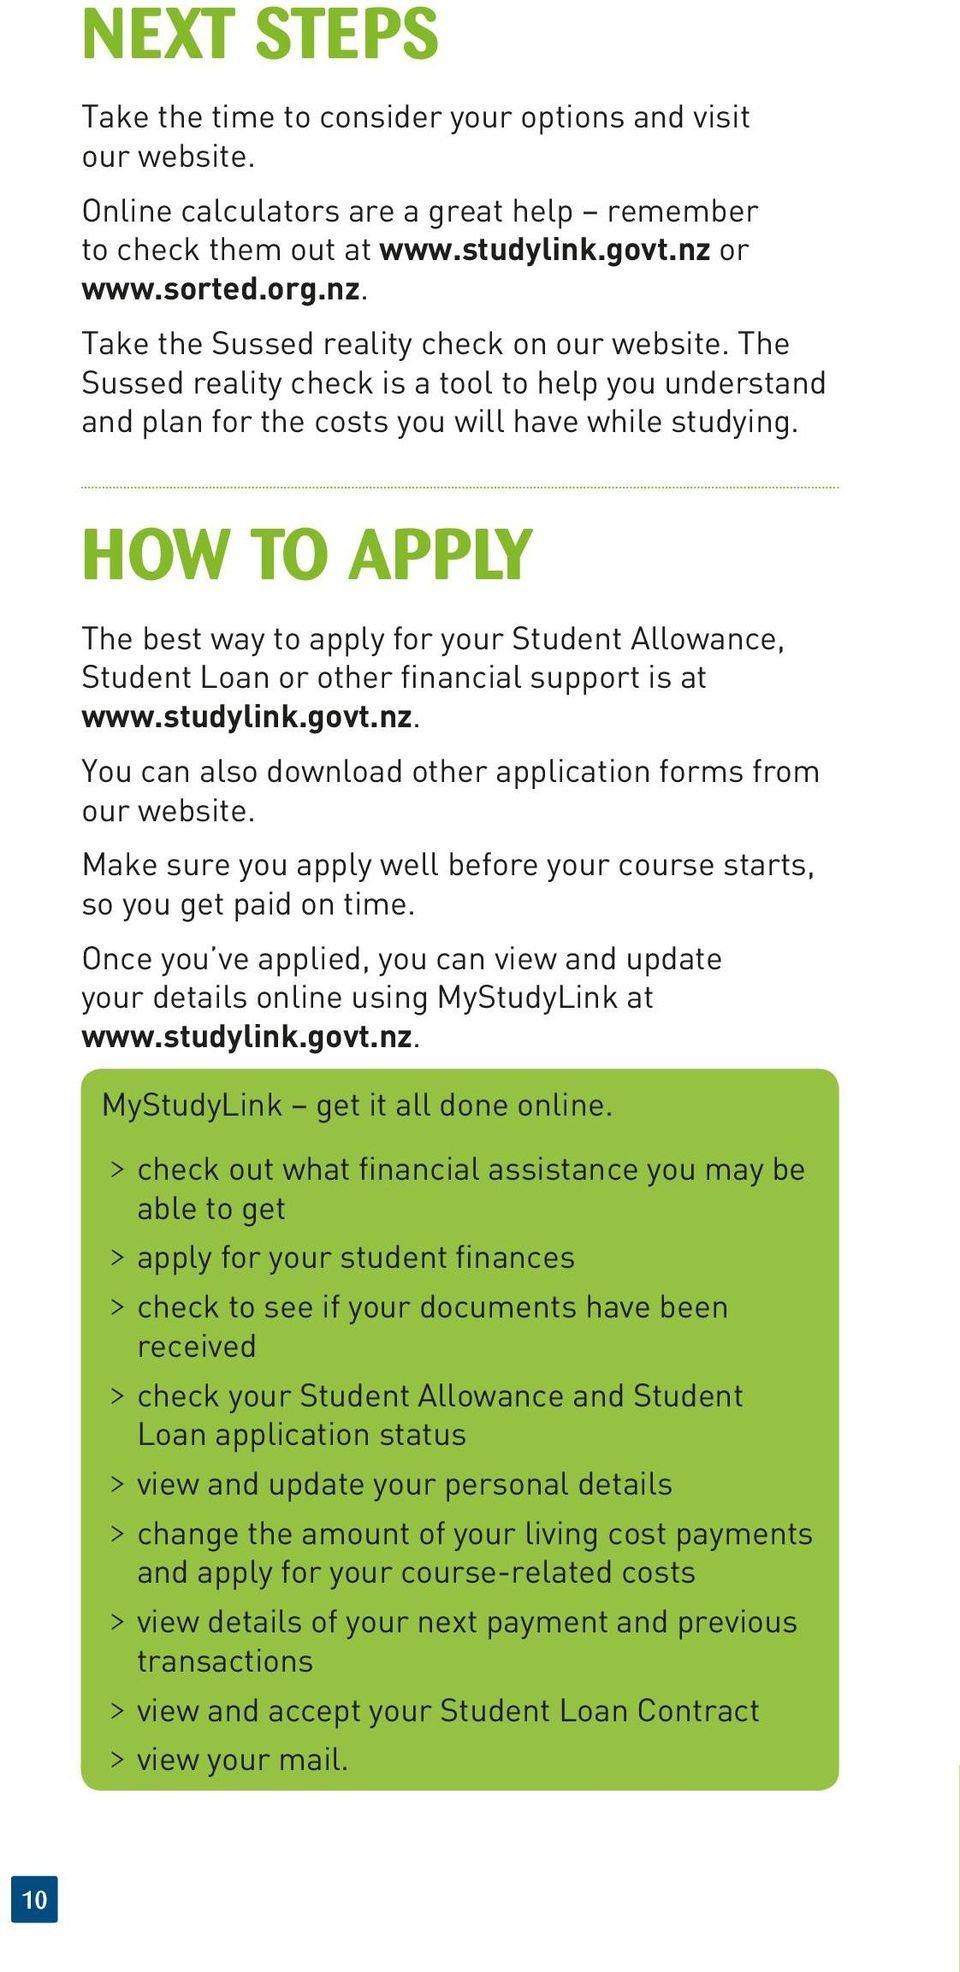 HOW TO APPLY The best way to apply for your Student Allowance, Student Loan or other financial support is at www.studylink.govt.nz. You can also download other application forms from our website.